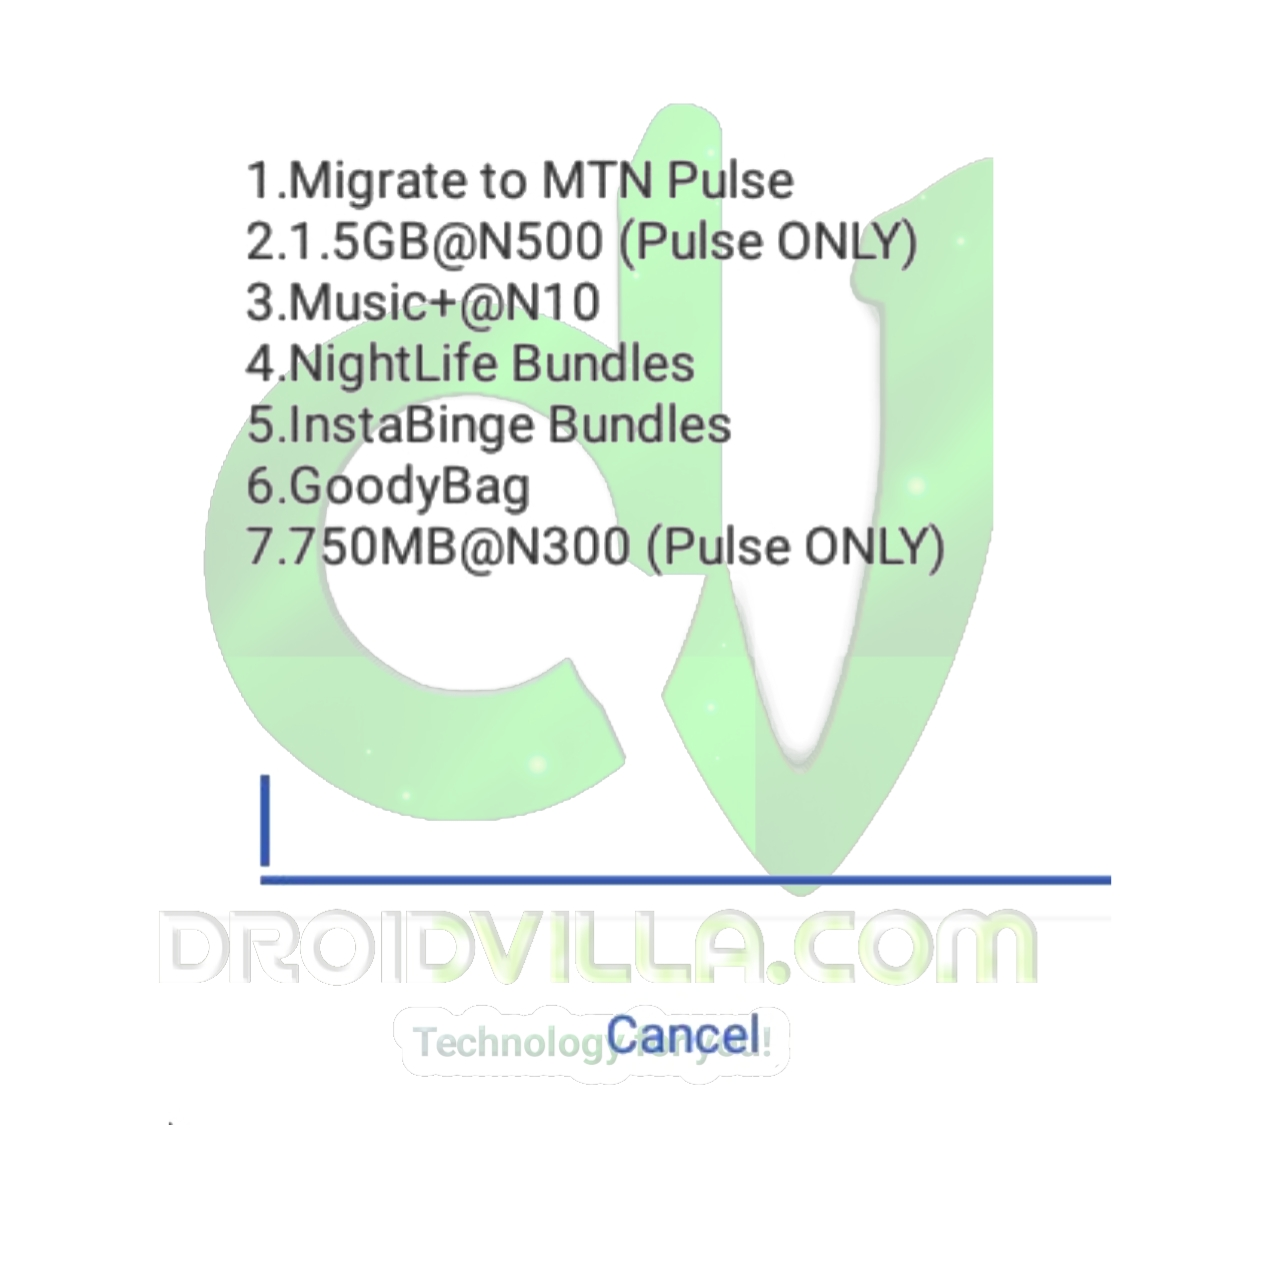 How To Activate MTN 750MB For N300 And 1.5GB For N500 On MTN Pulse Tariff Plan